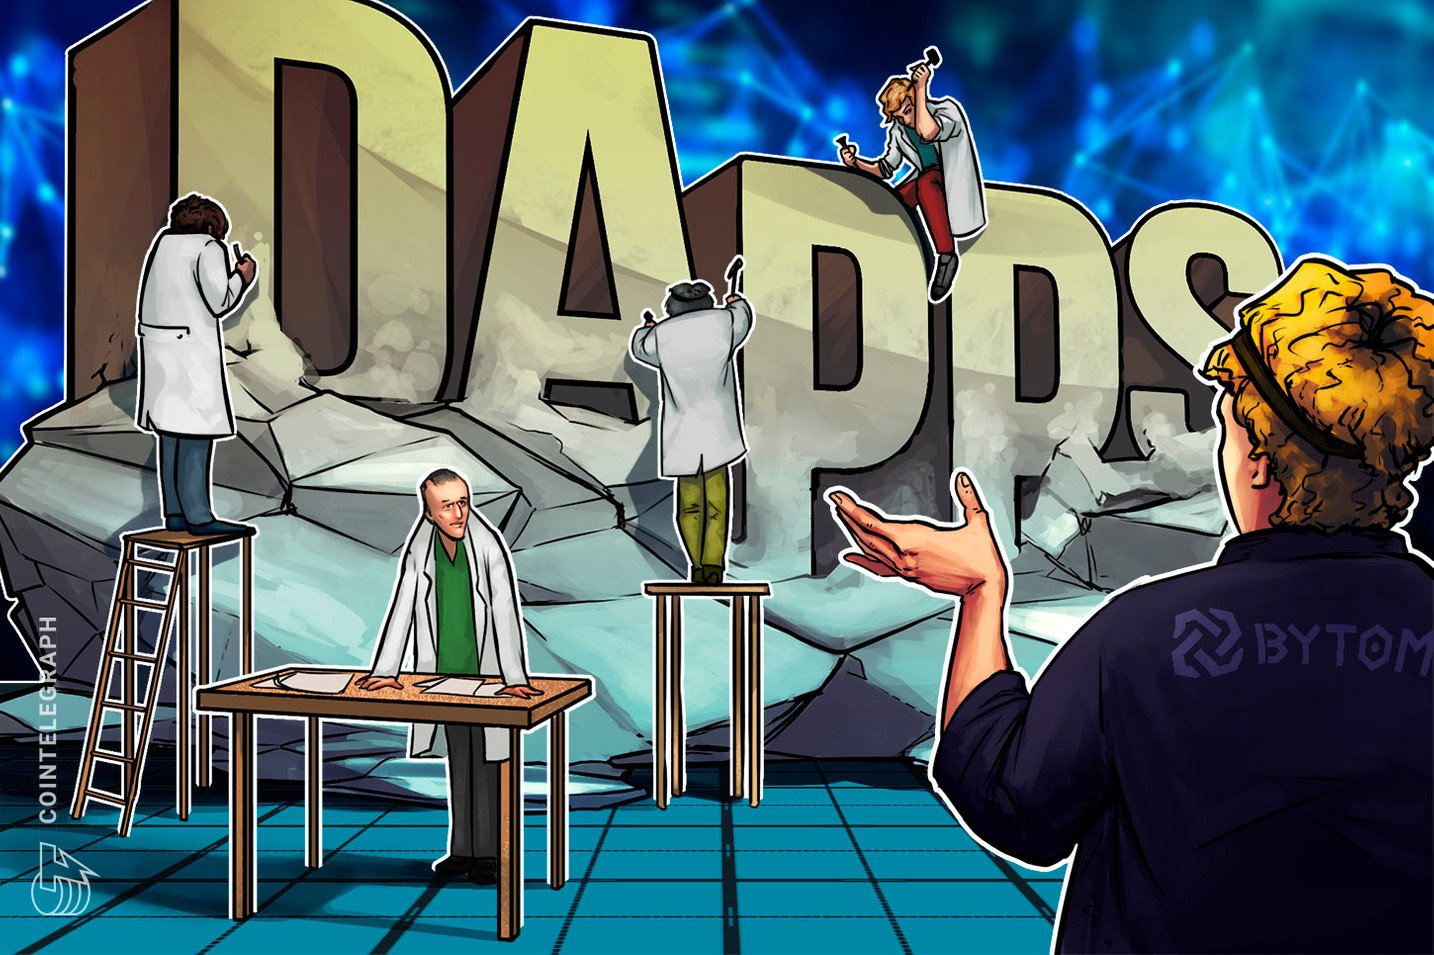 'Computing is Power': Blockchain Protocol Invites Developers to Build DApps on Its Network